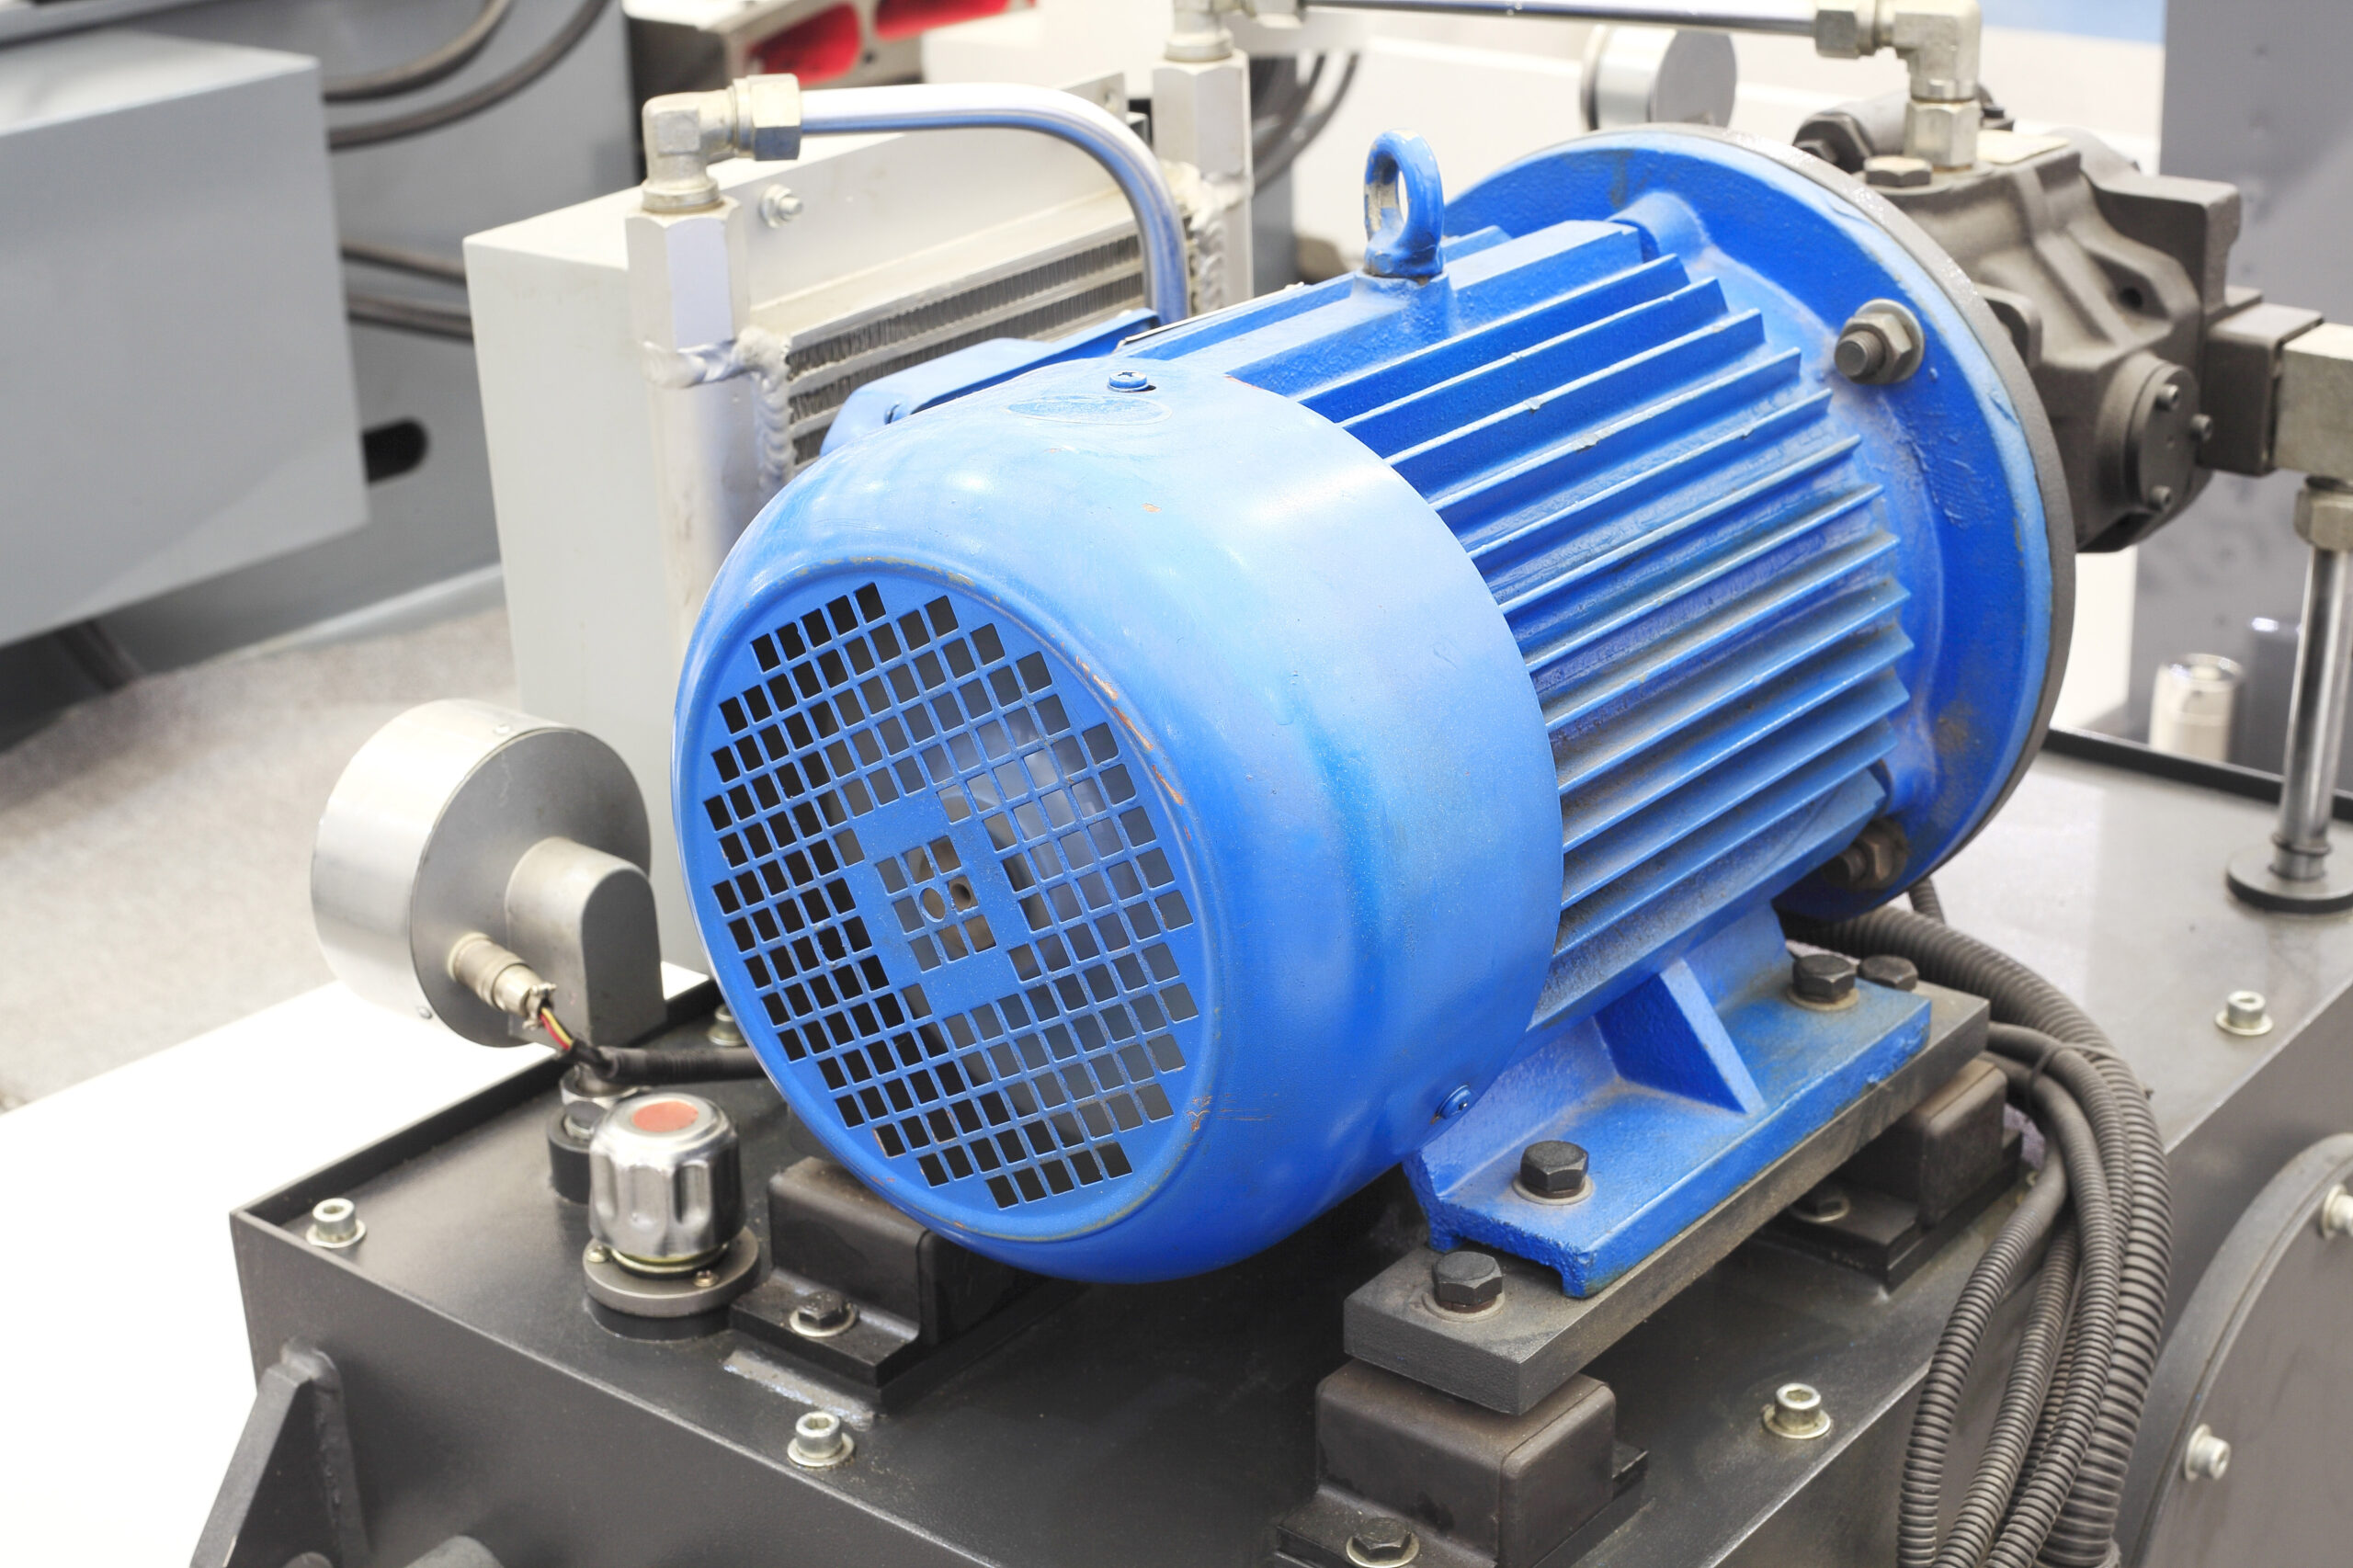 Gears and Machined Components for Electric Motors